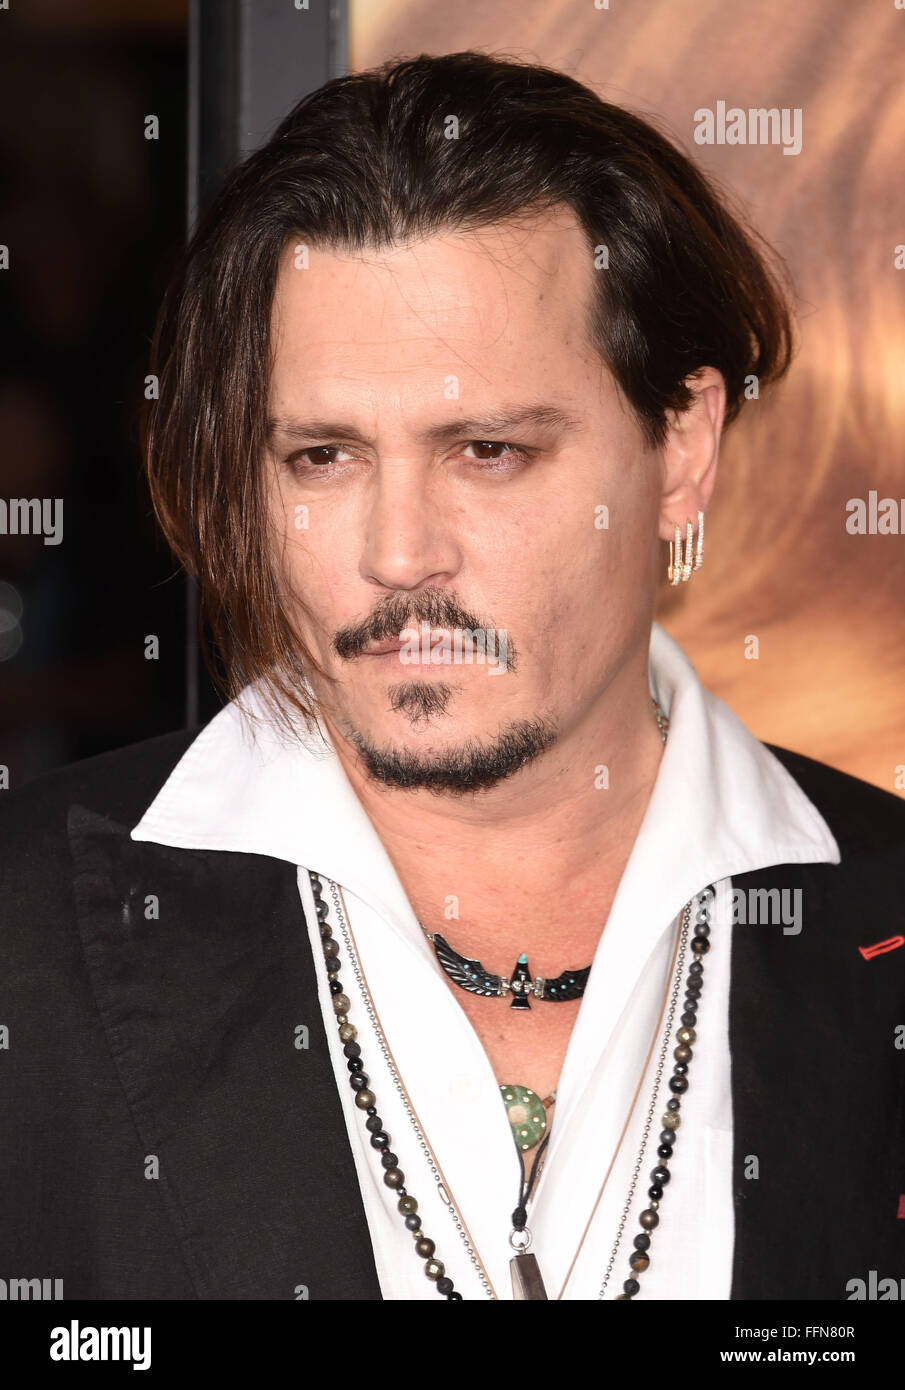 Actor Johnny Depp arrives at the premiere of Focus Features' 'The Danish Girl' at Westwood Village Theatre - Stock Image